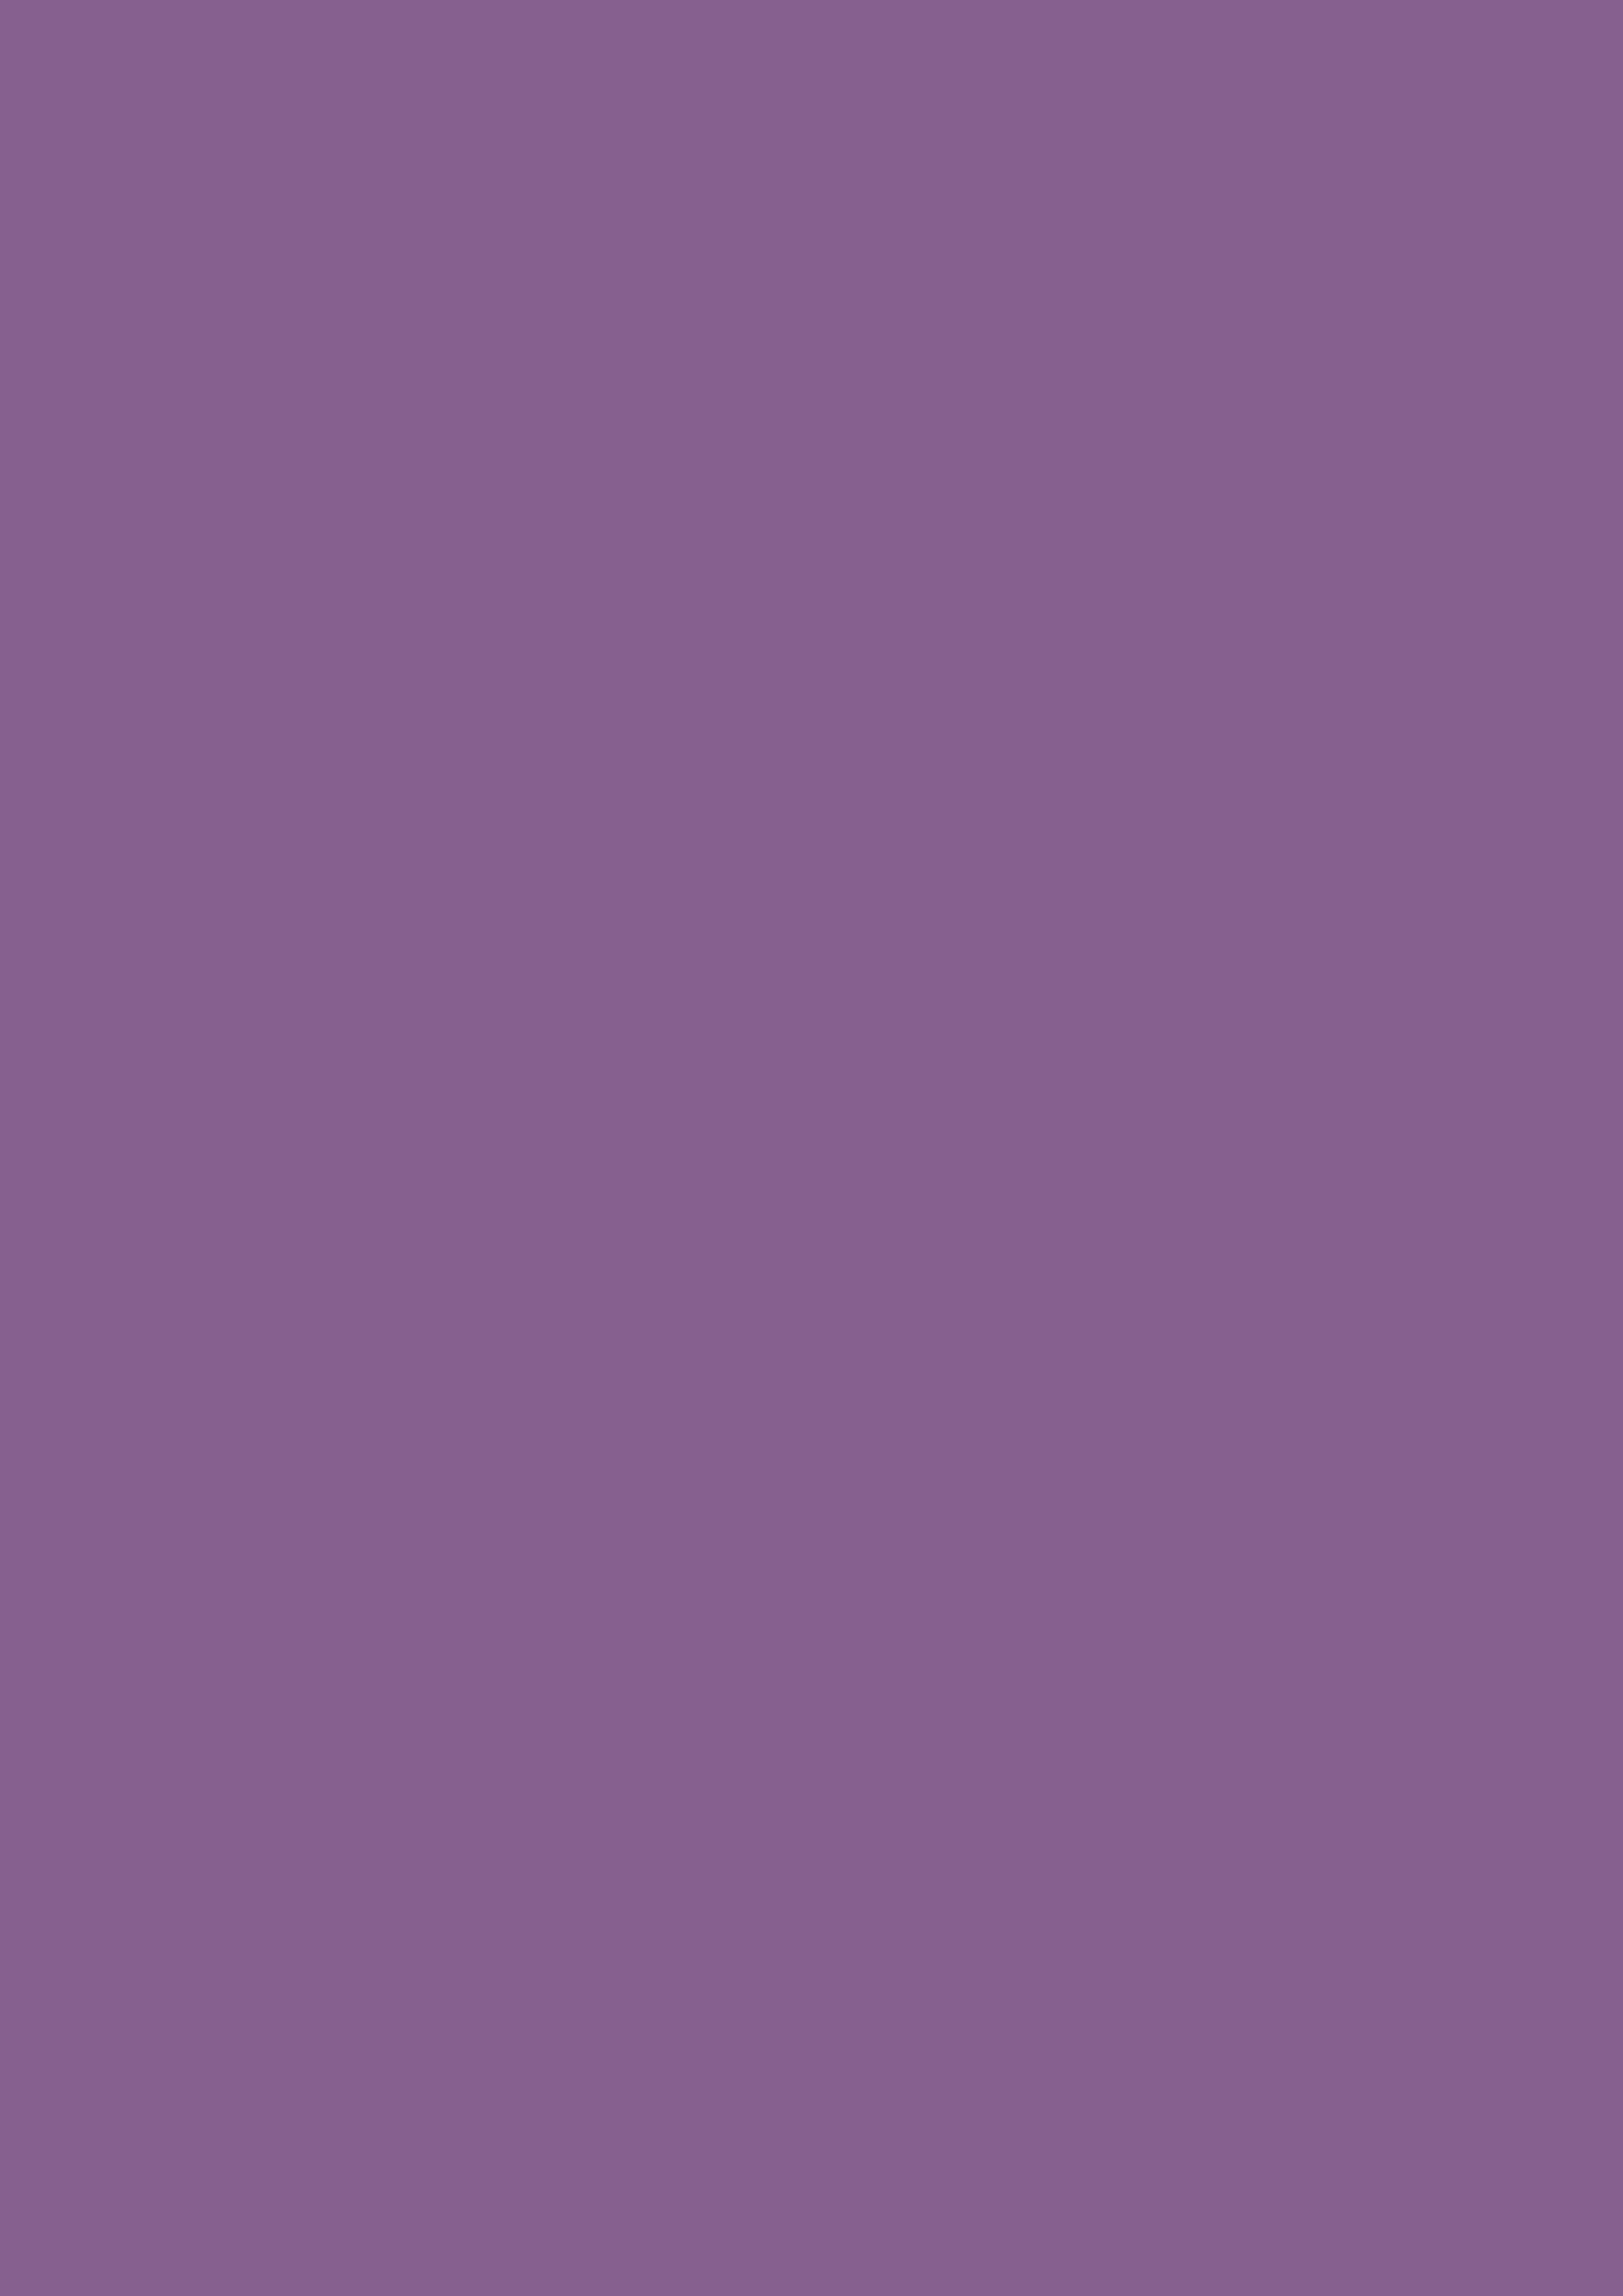 2480x3508 French Lilac Solid Color Background